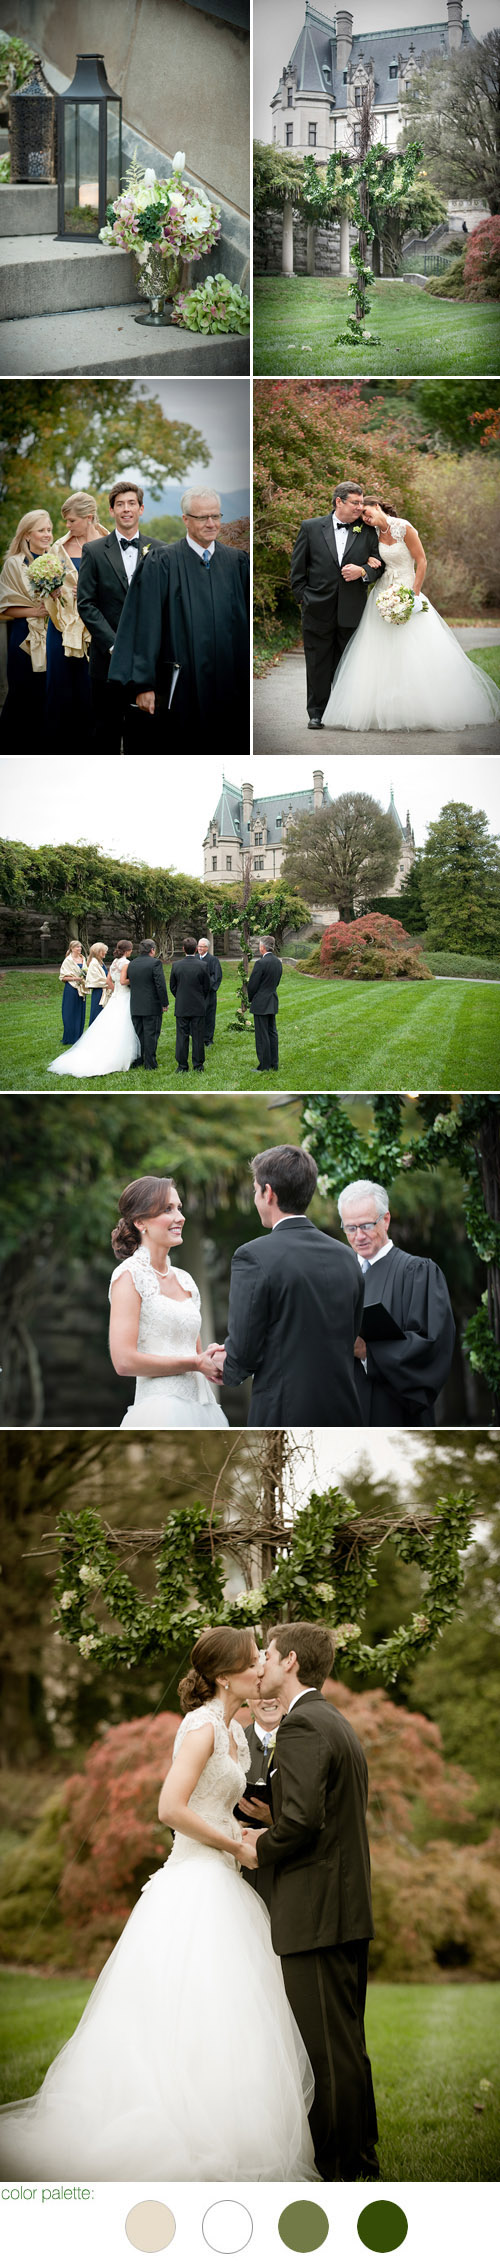 Biltmore Estate, Asheville, North Carolina real wedding, ceremony images by Woodward + Rick